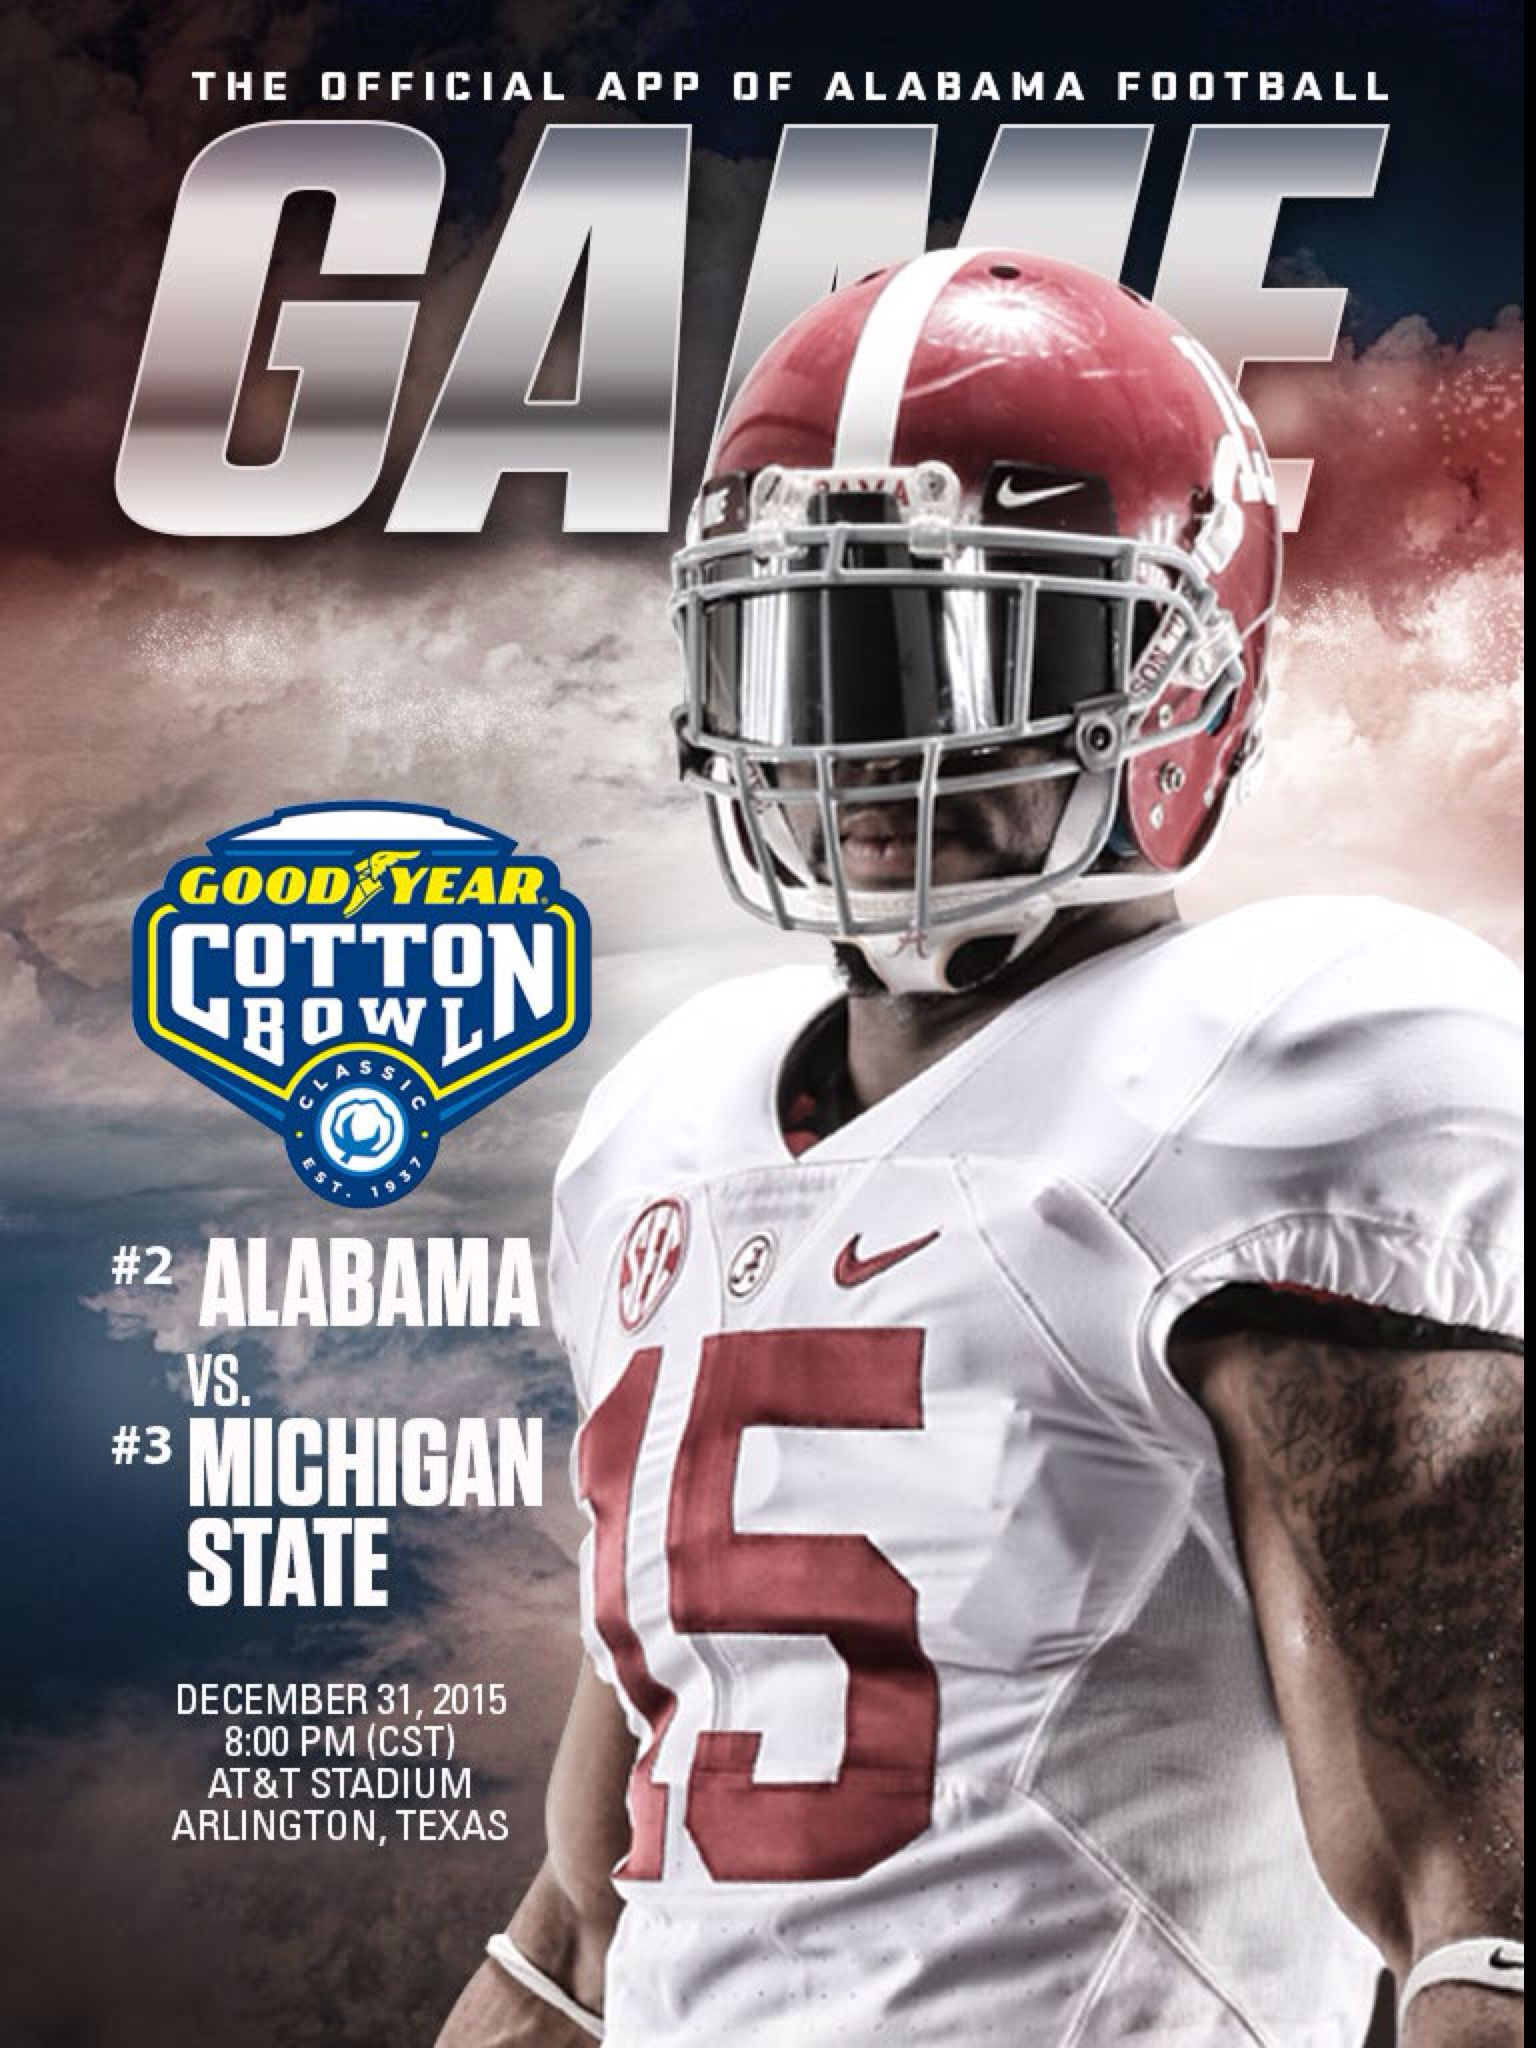 Alabama vs mich st digital gameday cover playoff cotton